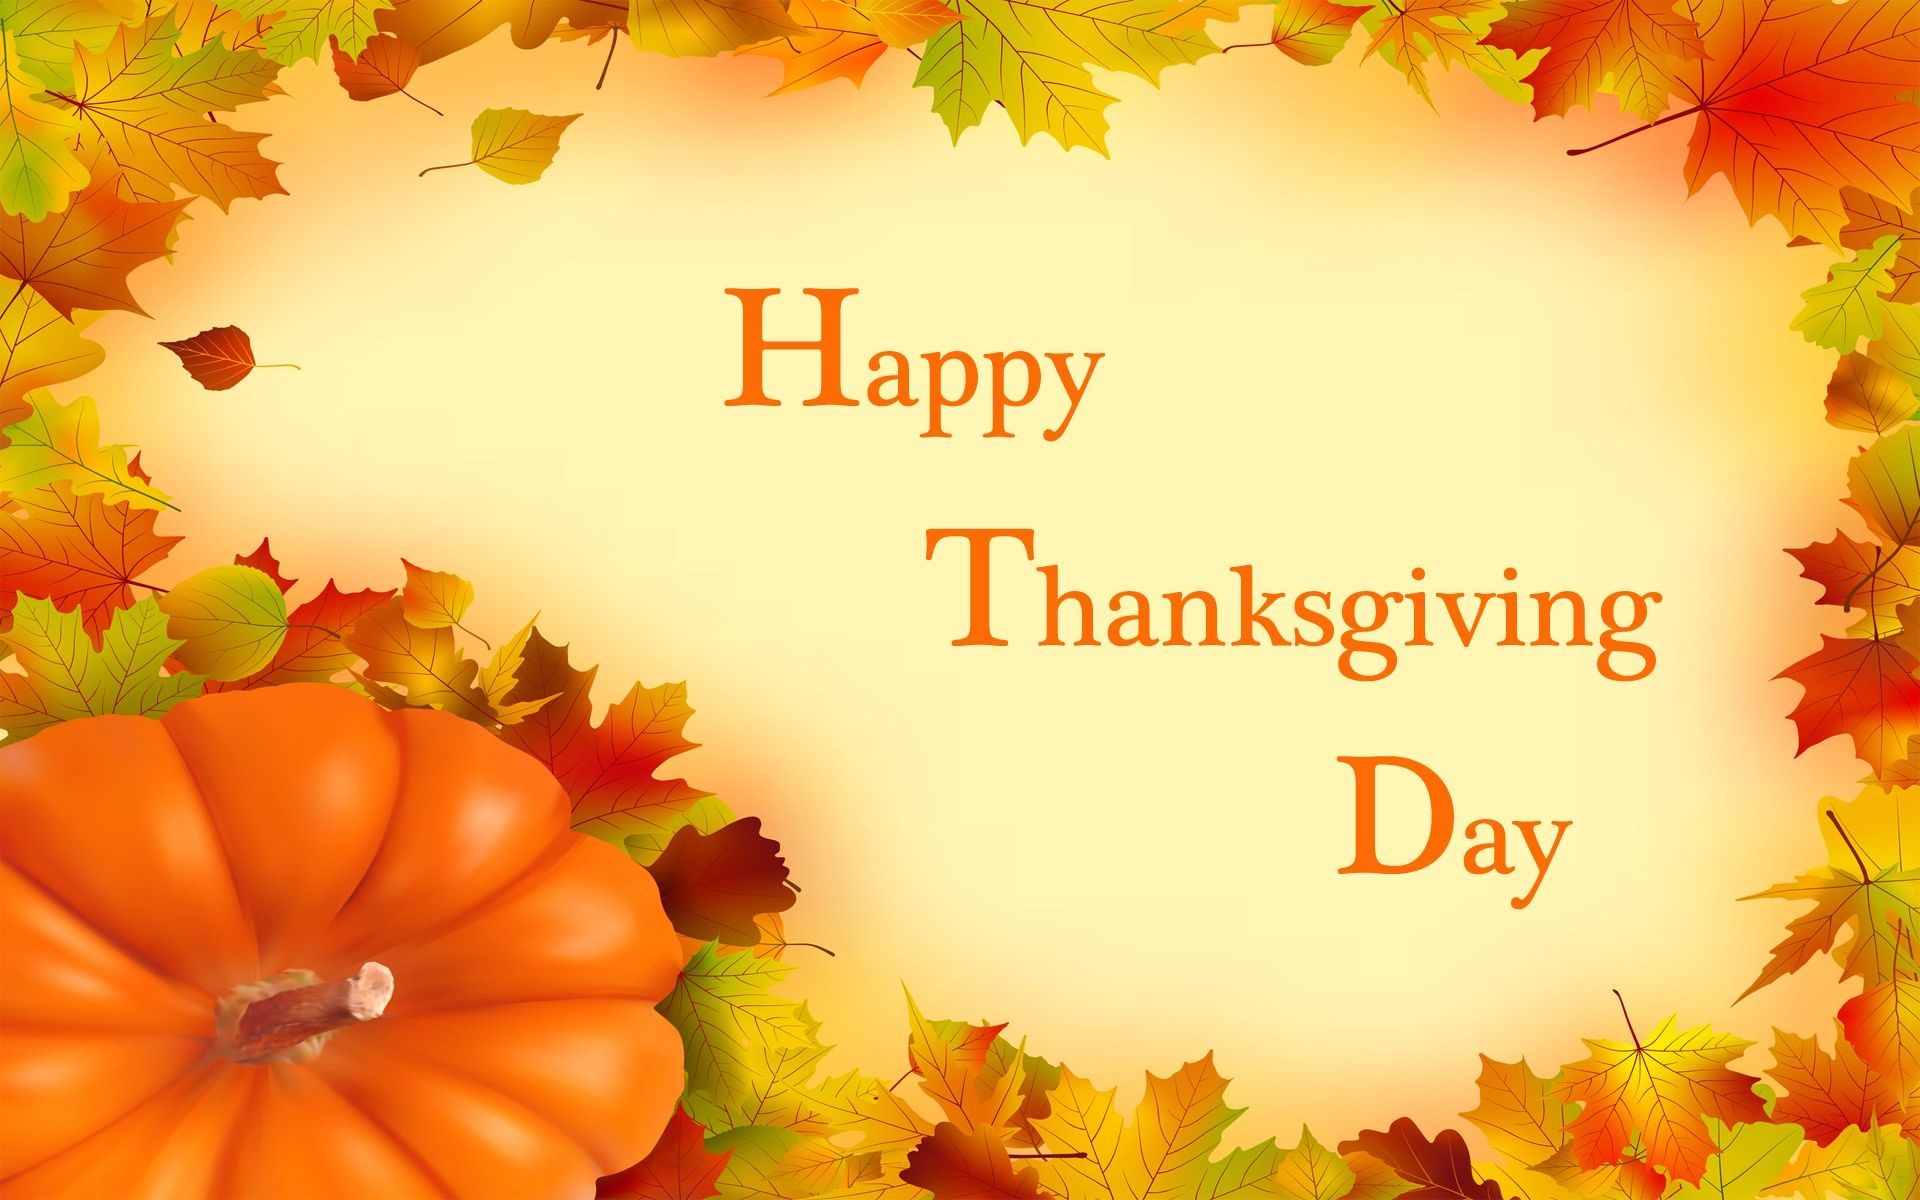 happy thanks giving day hd images